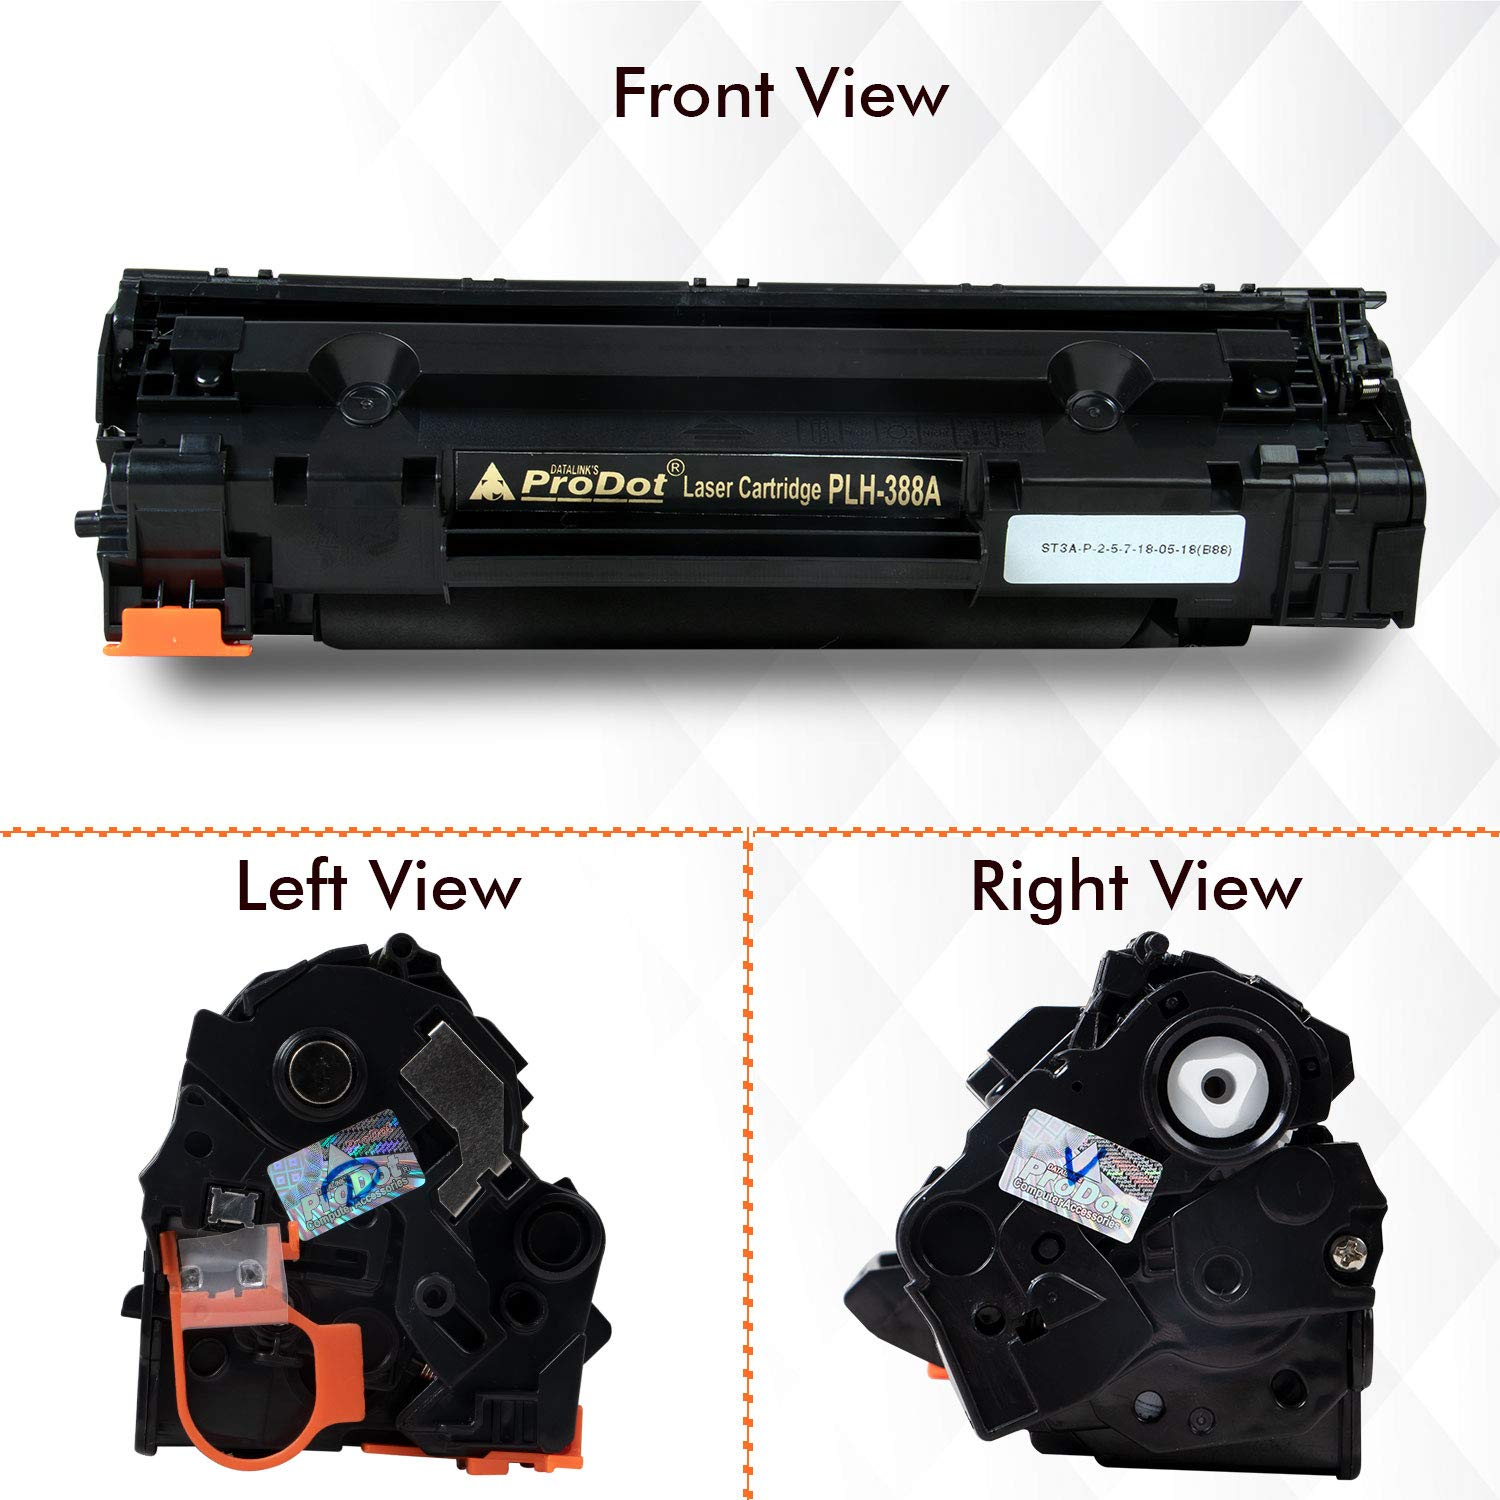 ProDot PLH-388A Compatible Laser Printer Toner Cartridge for HP